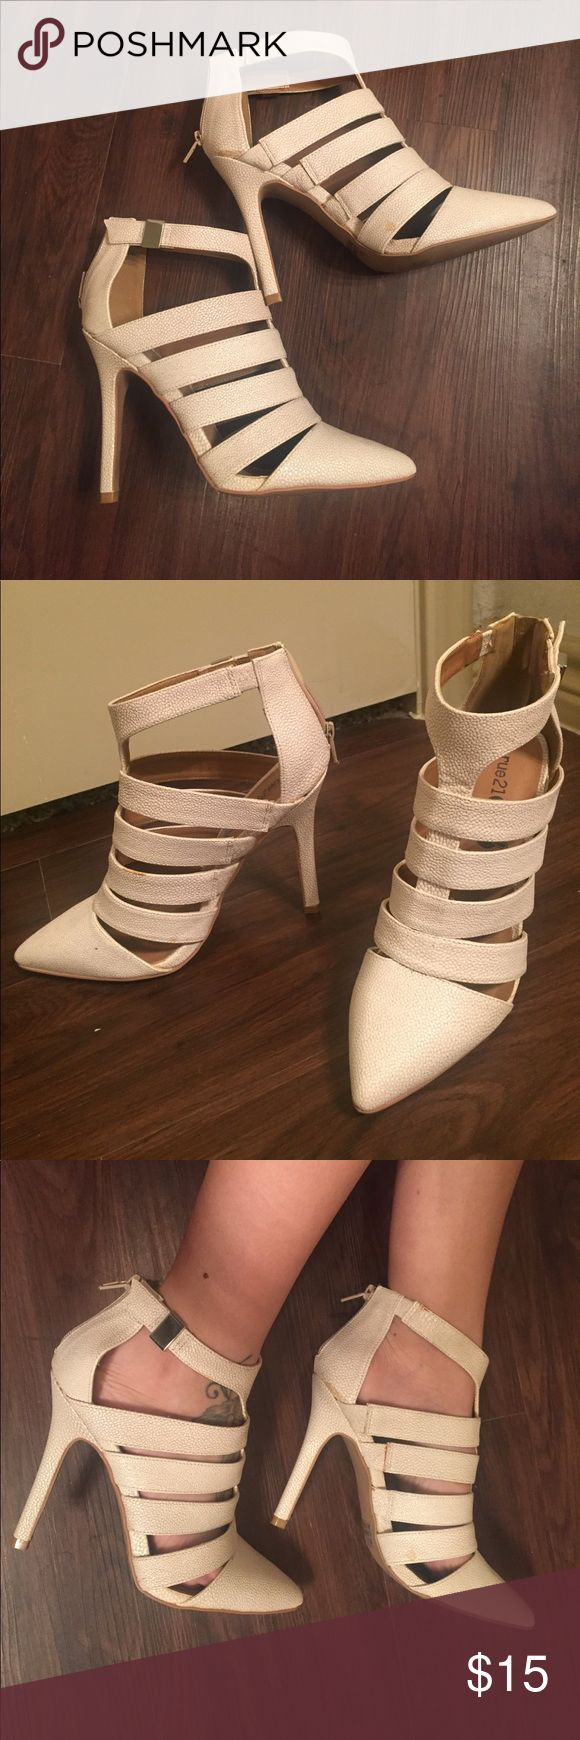 💛BRAND NEW💛 Women's nude zip heels Rue 21 BRAND NEW women's heels! nude color, zips in back, goes with anything! 👠💛 Size Large-fits size 8-8.5 Rue21 Shoes Heels